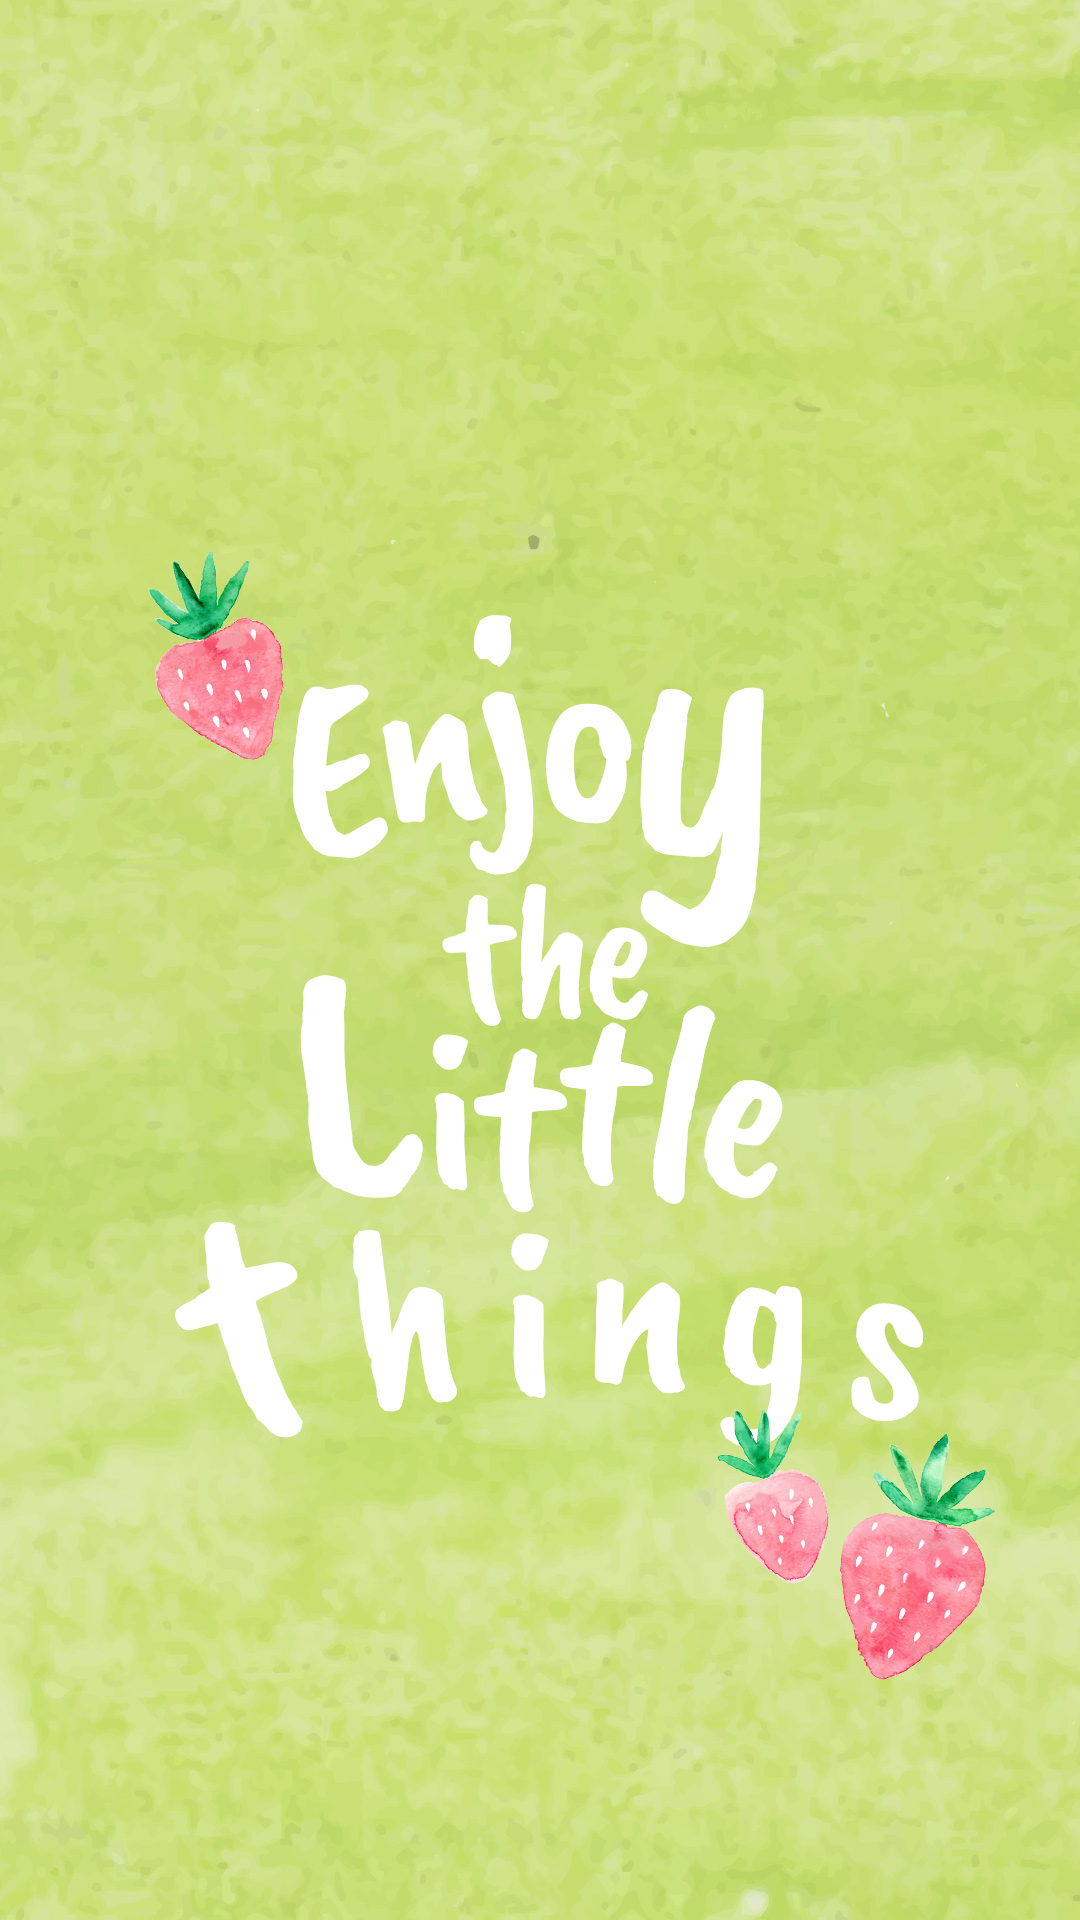 Free colorful smartphone wallpaper enjoy the little things free colorful smartphone wallpaper enjoy the little things voltagebd Image collections